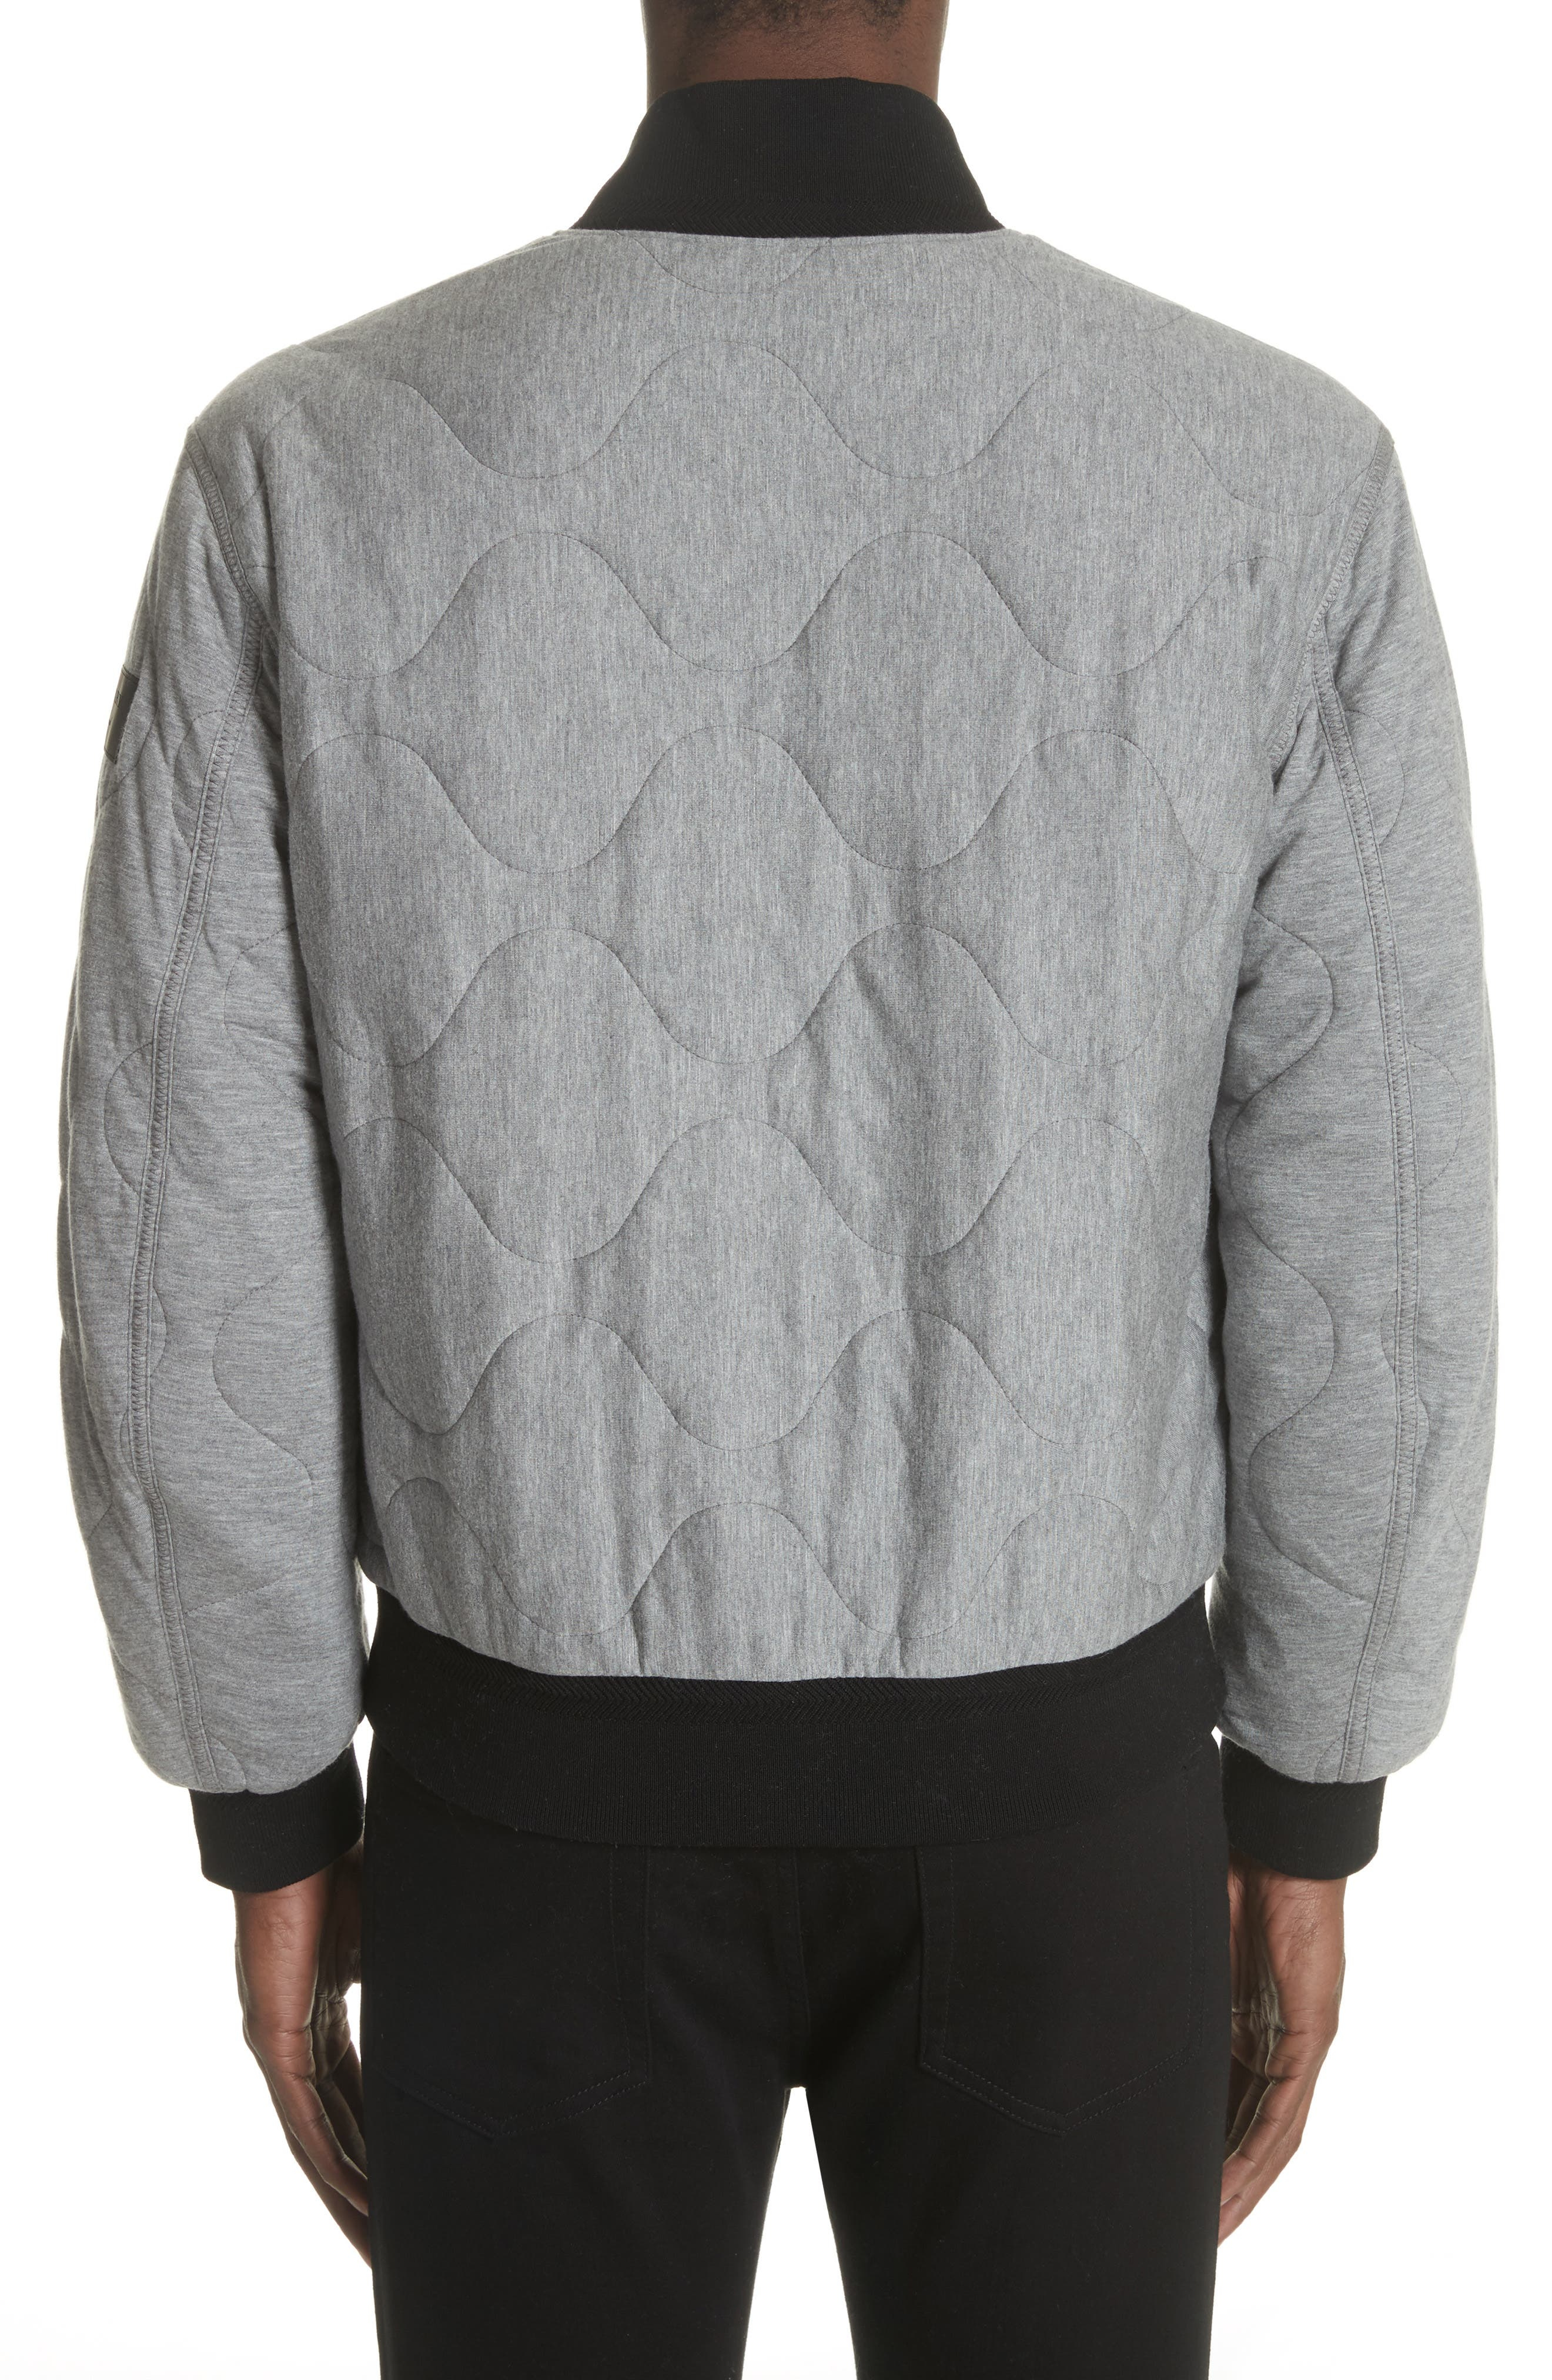 BURBERRY,                             Campton Reversible Quilted Jersey Bomber Jacket,                             Alternate thumbnail 3, color,                             031